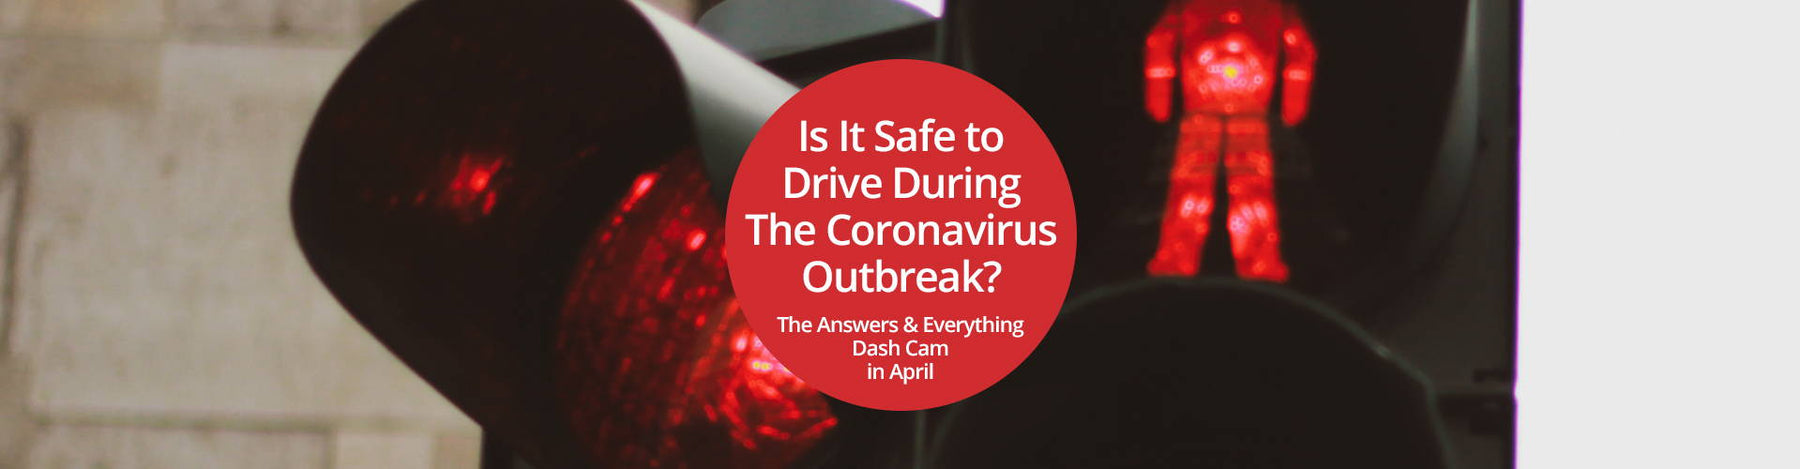 Is It Safe to Drive During The Coronavirus Outbreak?